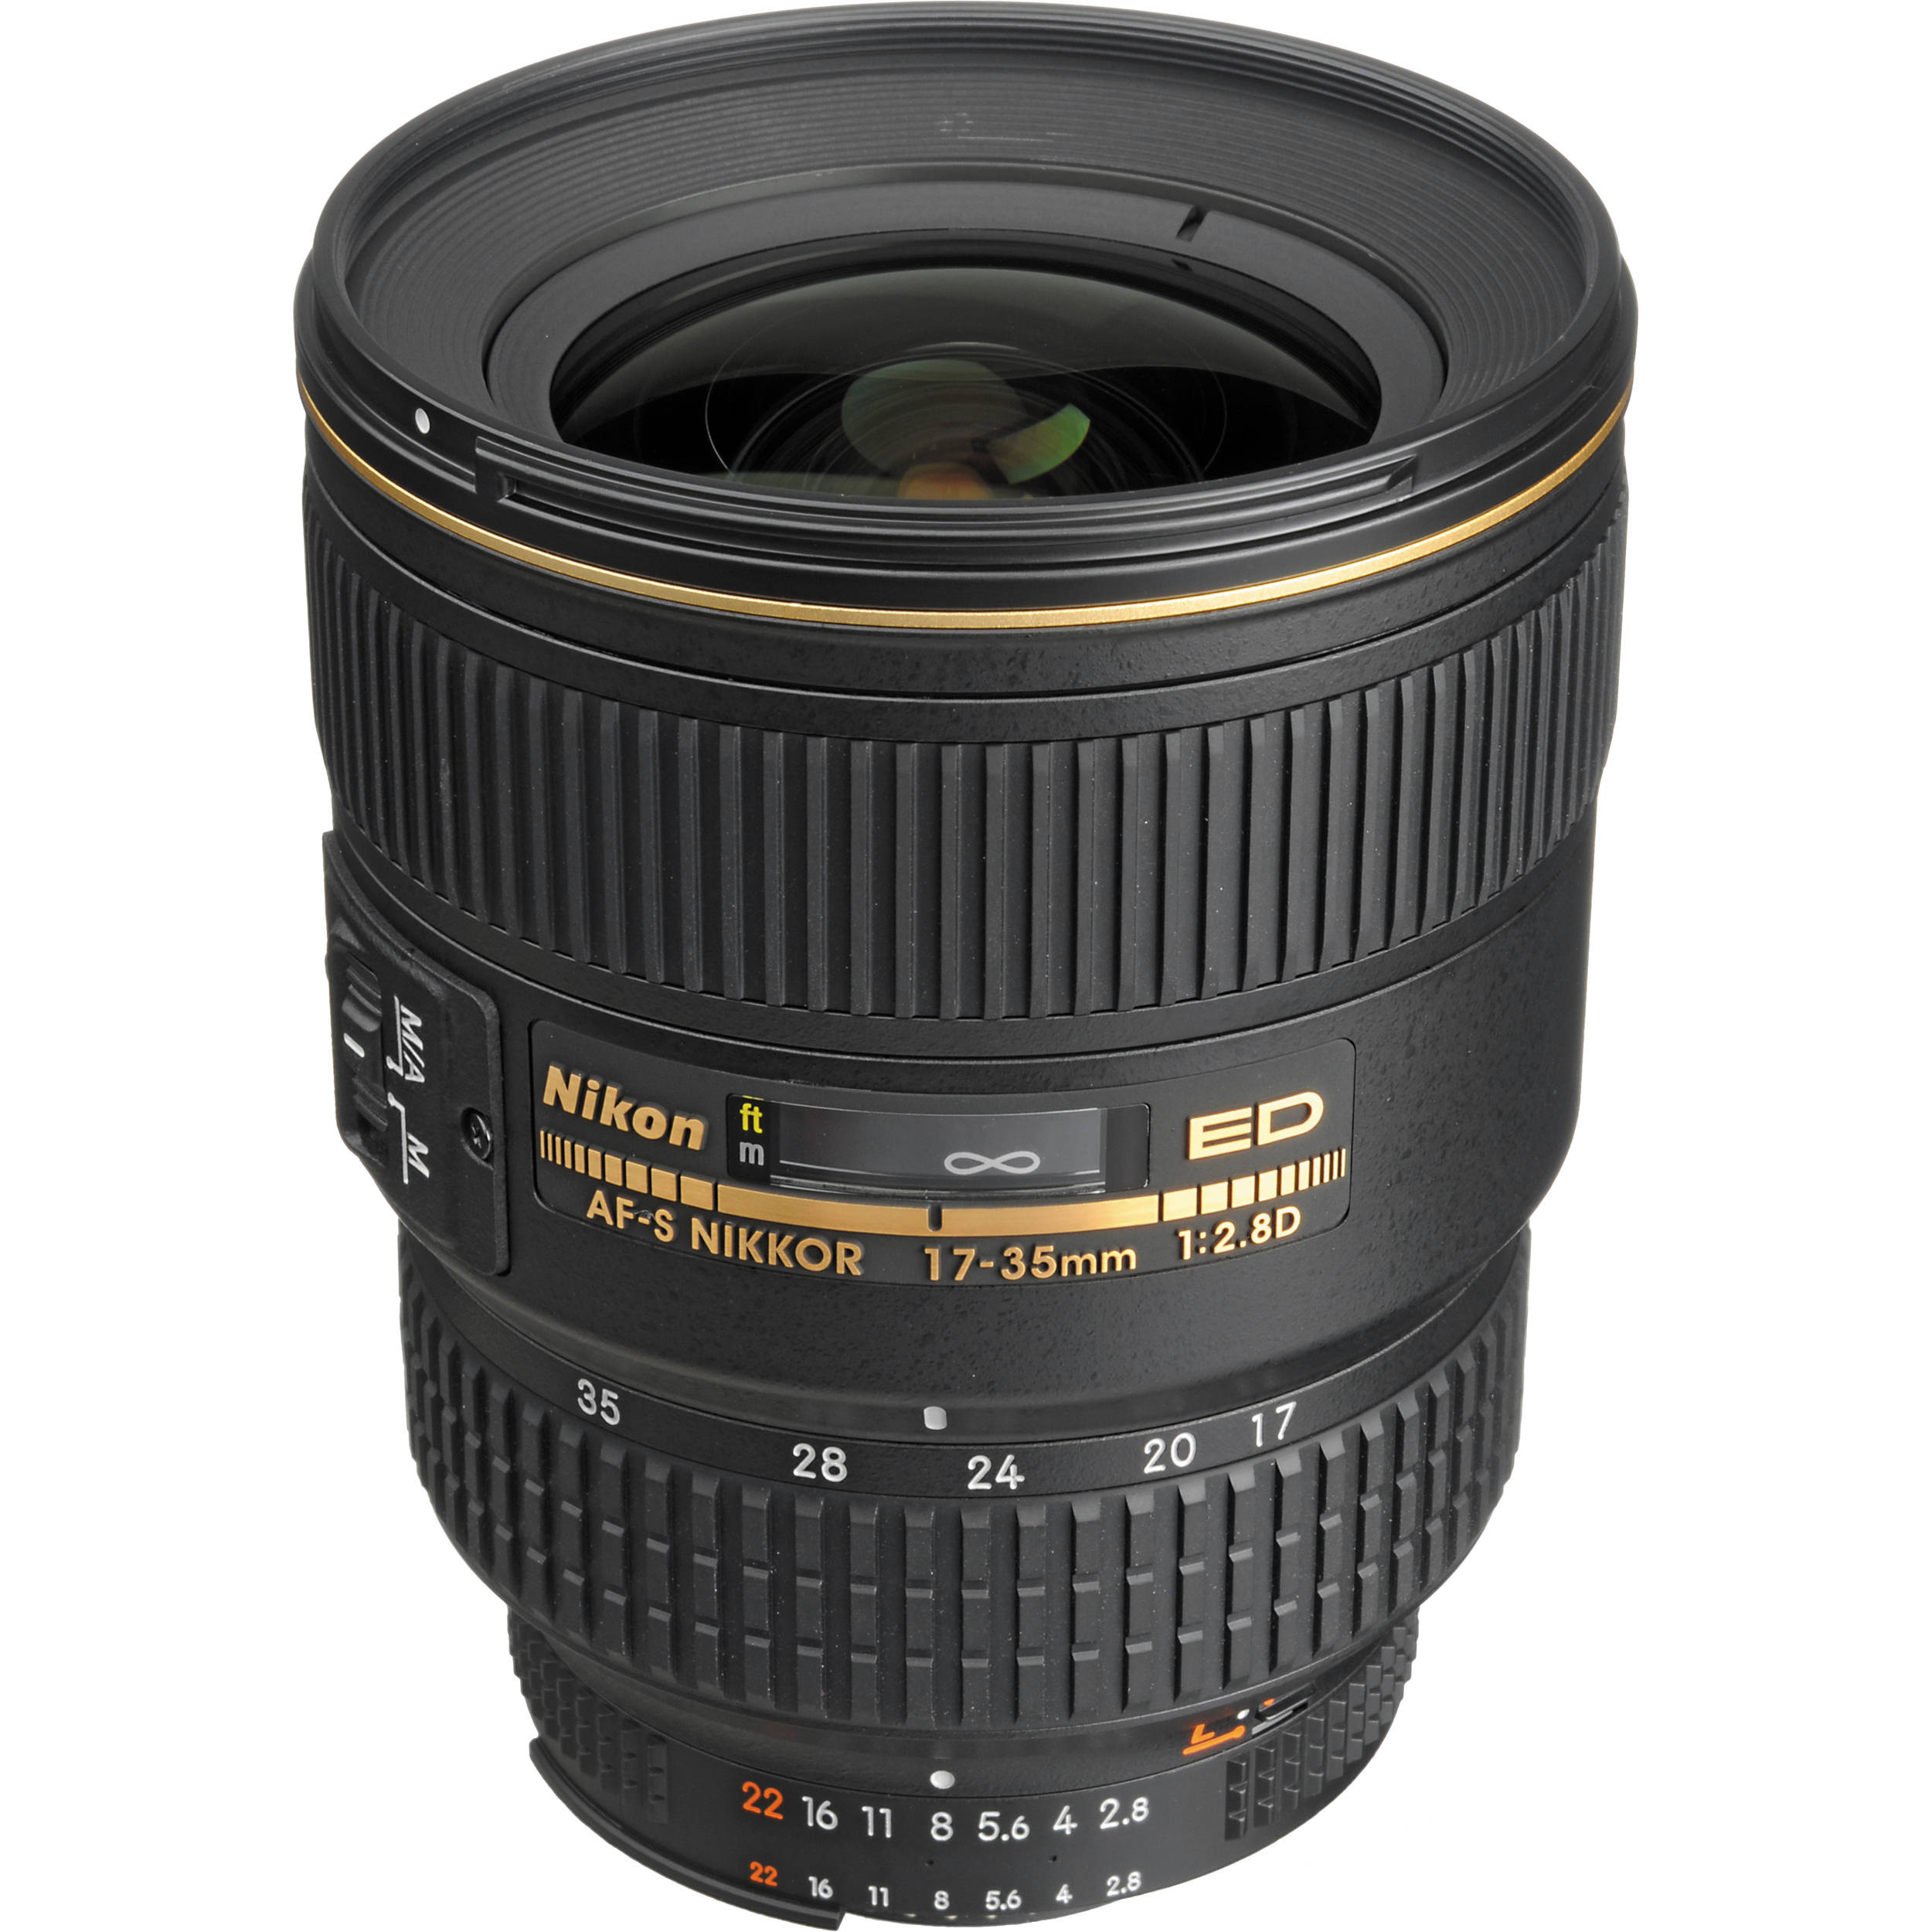 Nikon AF-S Zoom 17-35mm f2.8D IF-ED Lens